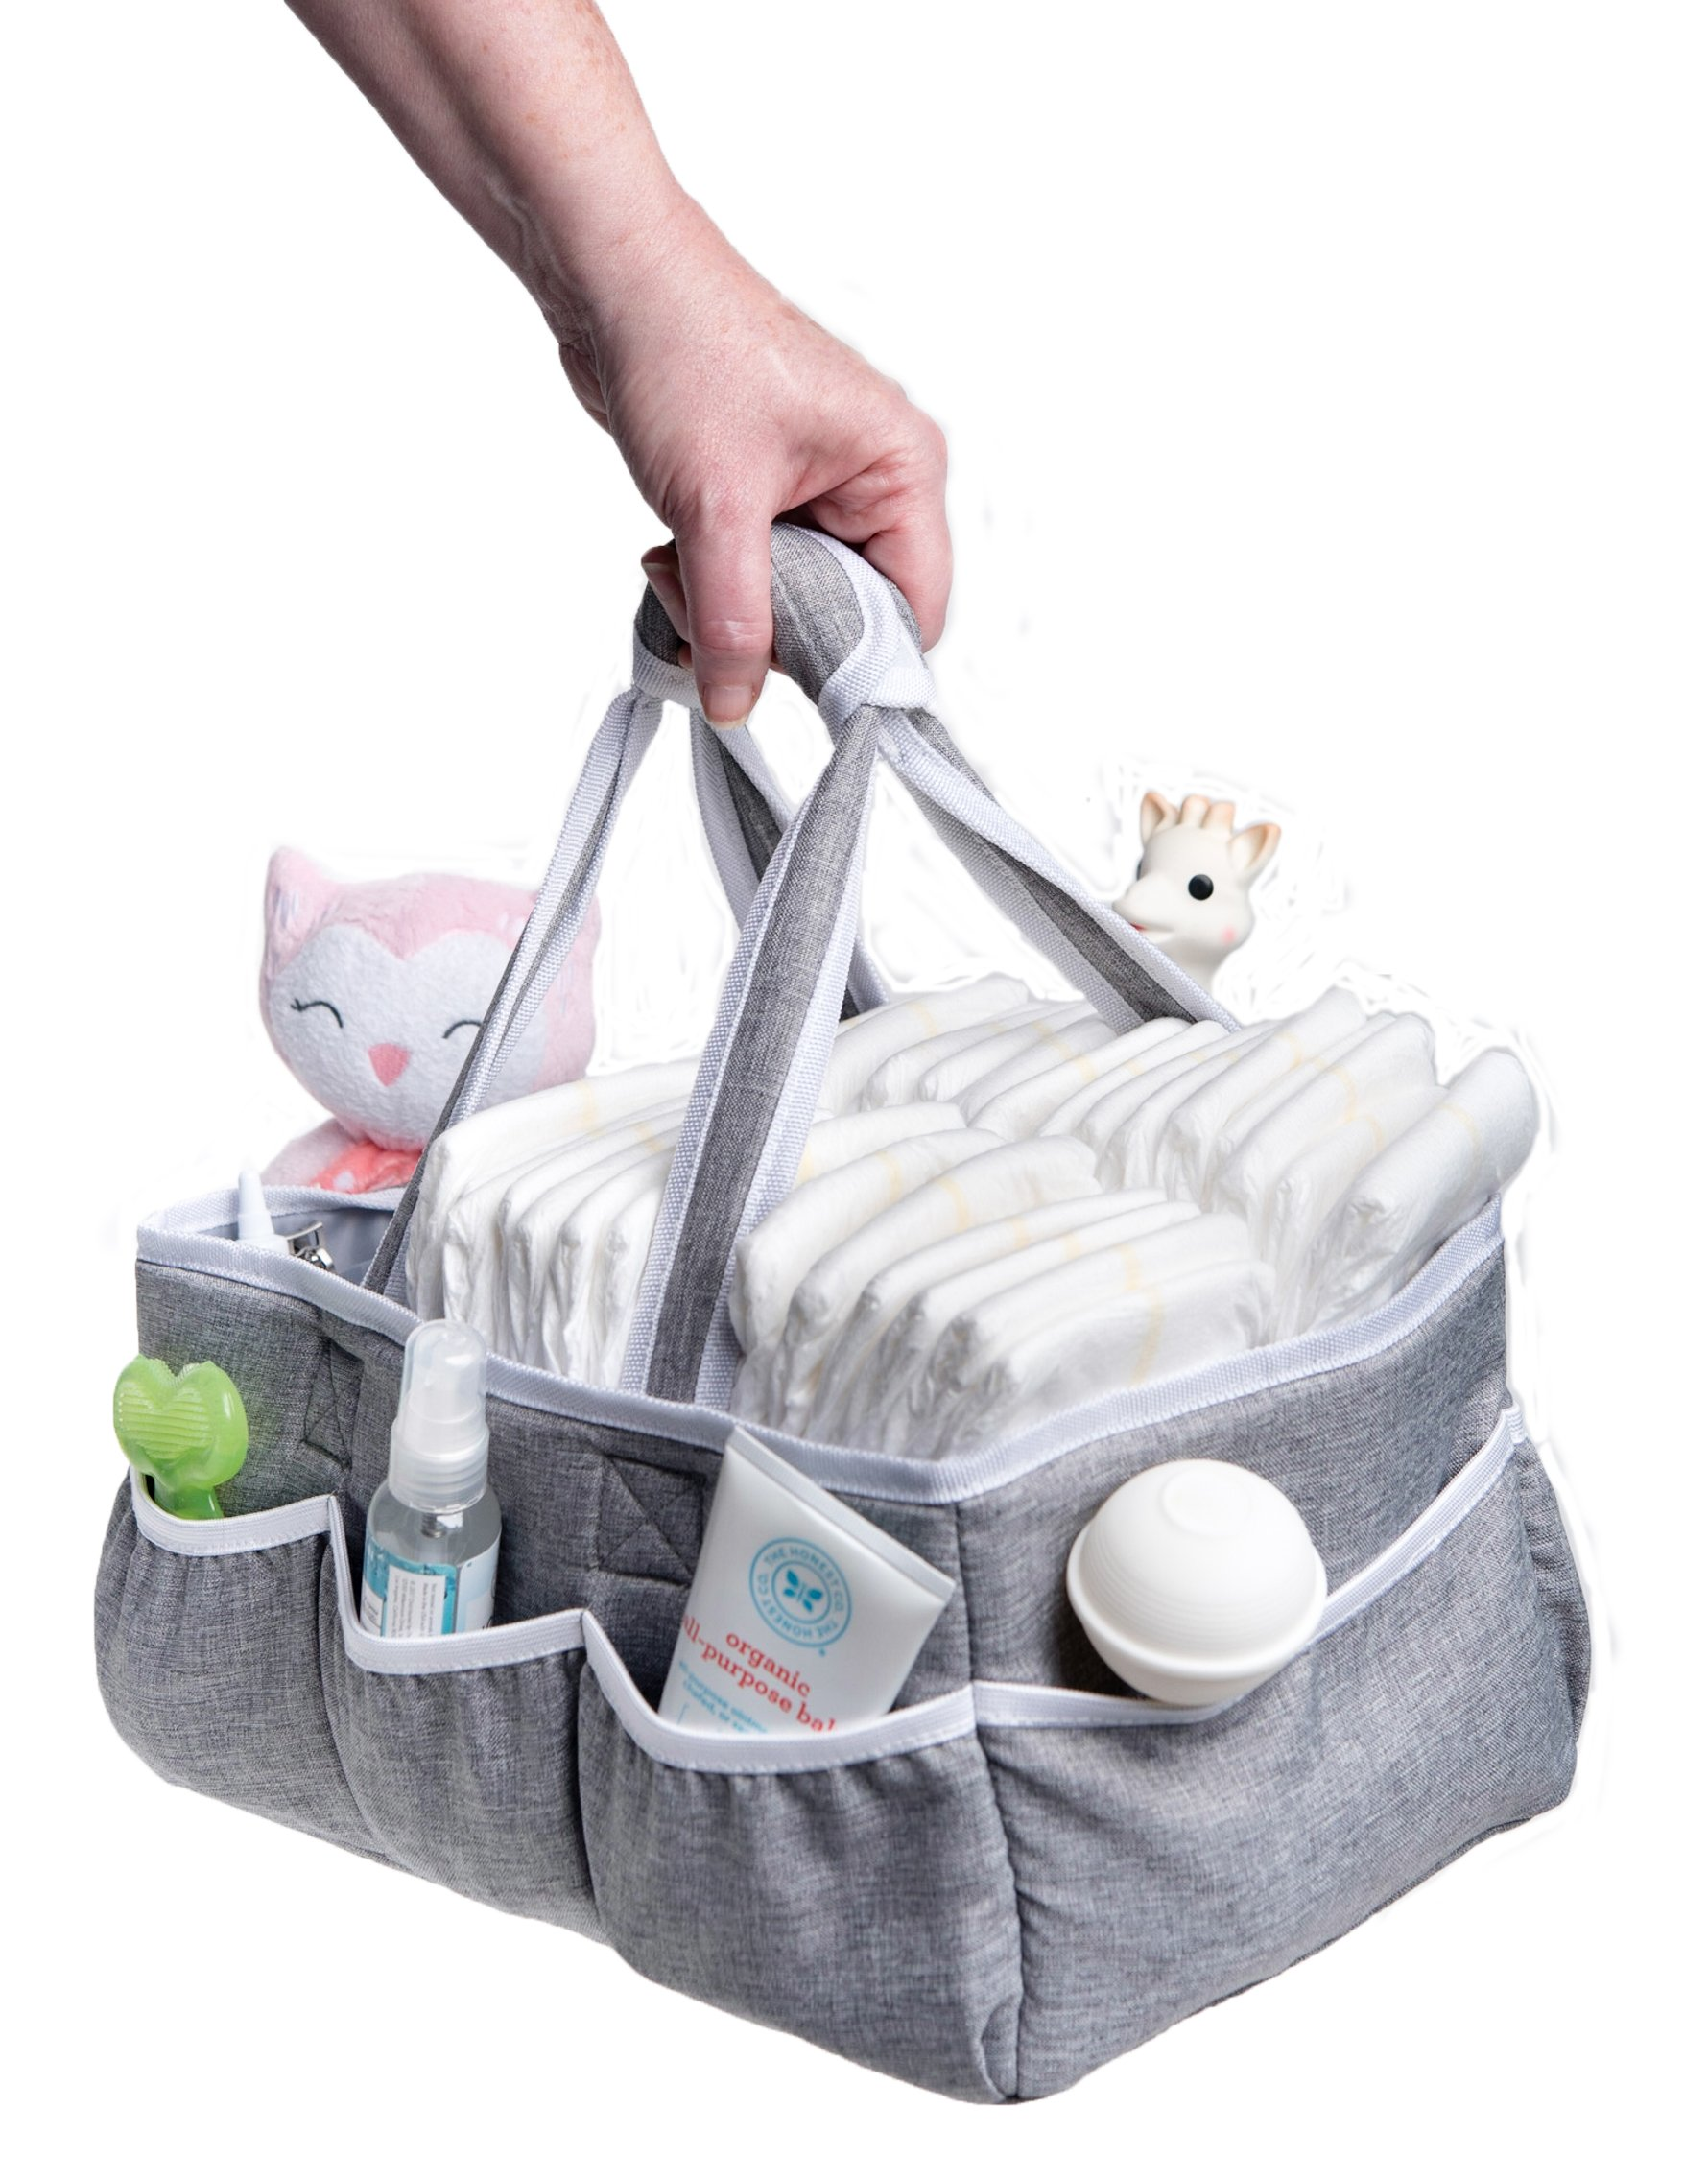 Wallaby Diaper Caddy Storage Bin - Organizer for Diapers, Wipes, Baby Bottles and More. Great for Home, Car, Travel or a Baby Shower Gift. by Bed Buddy (Image #5)